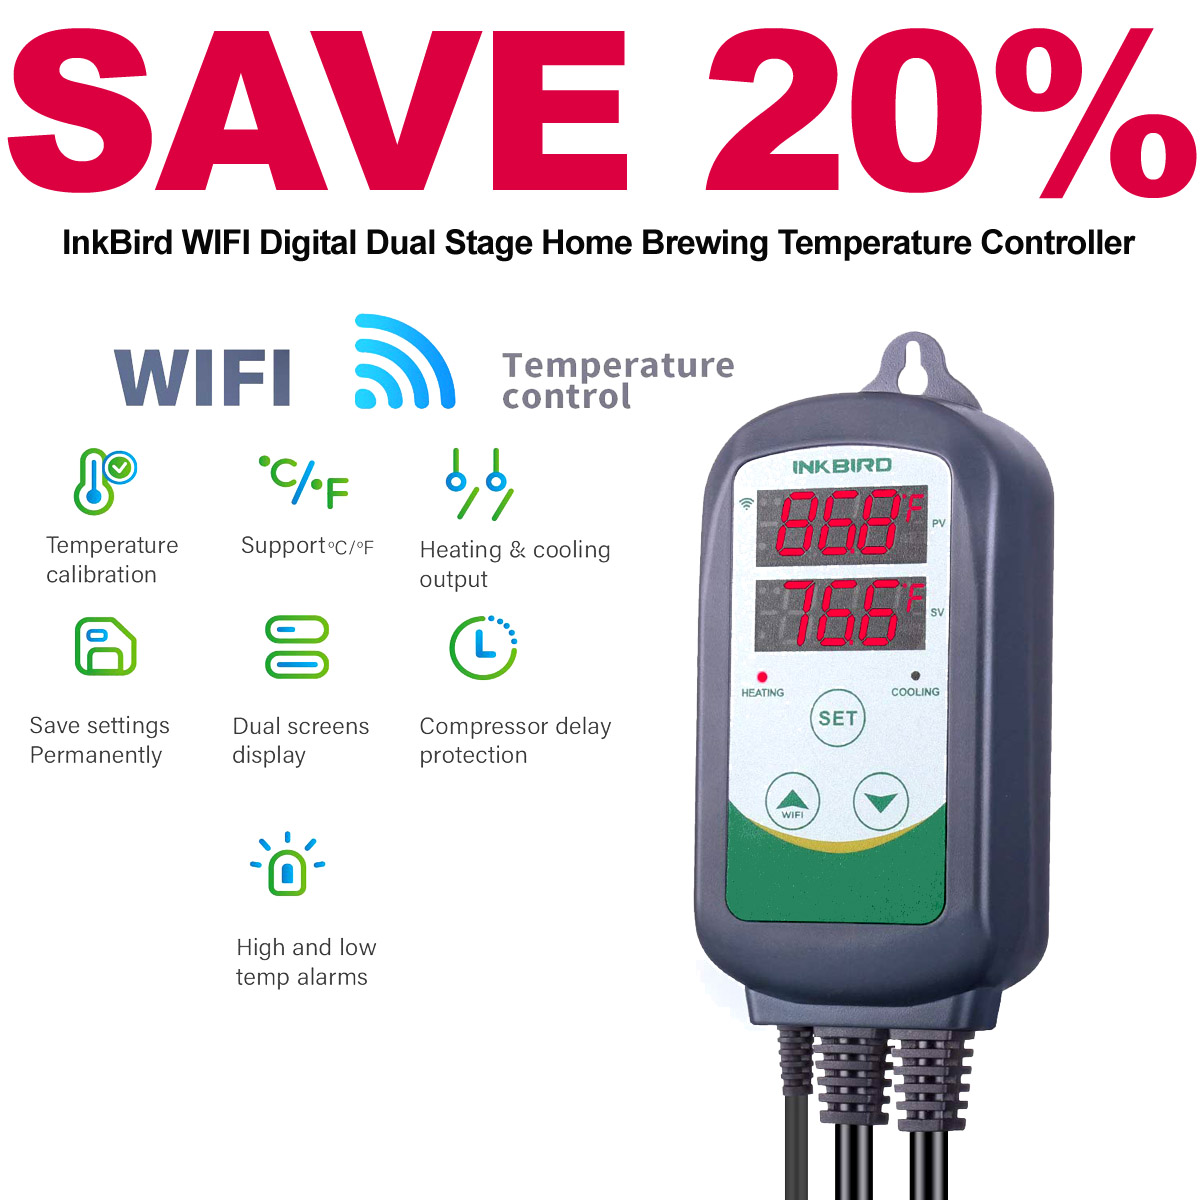 Save 20% On a NEW Ink Bird Wifi Dual Stage Home Brewing Temperature Controller